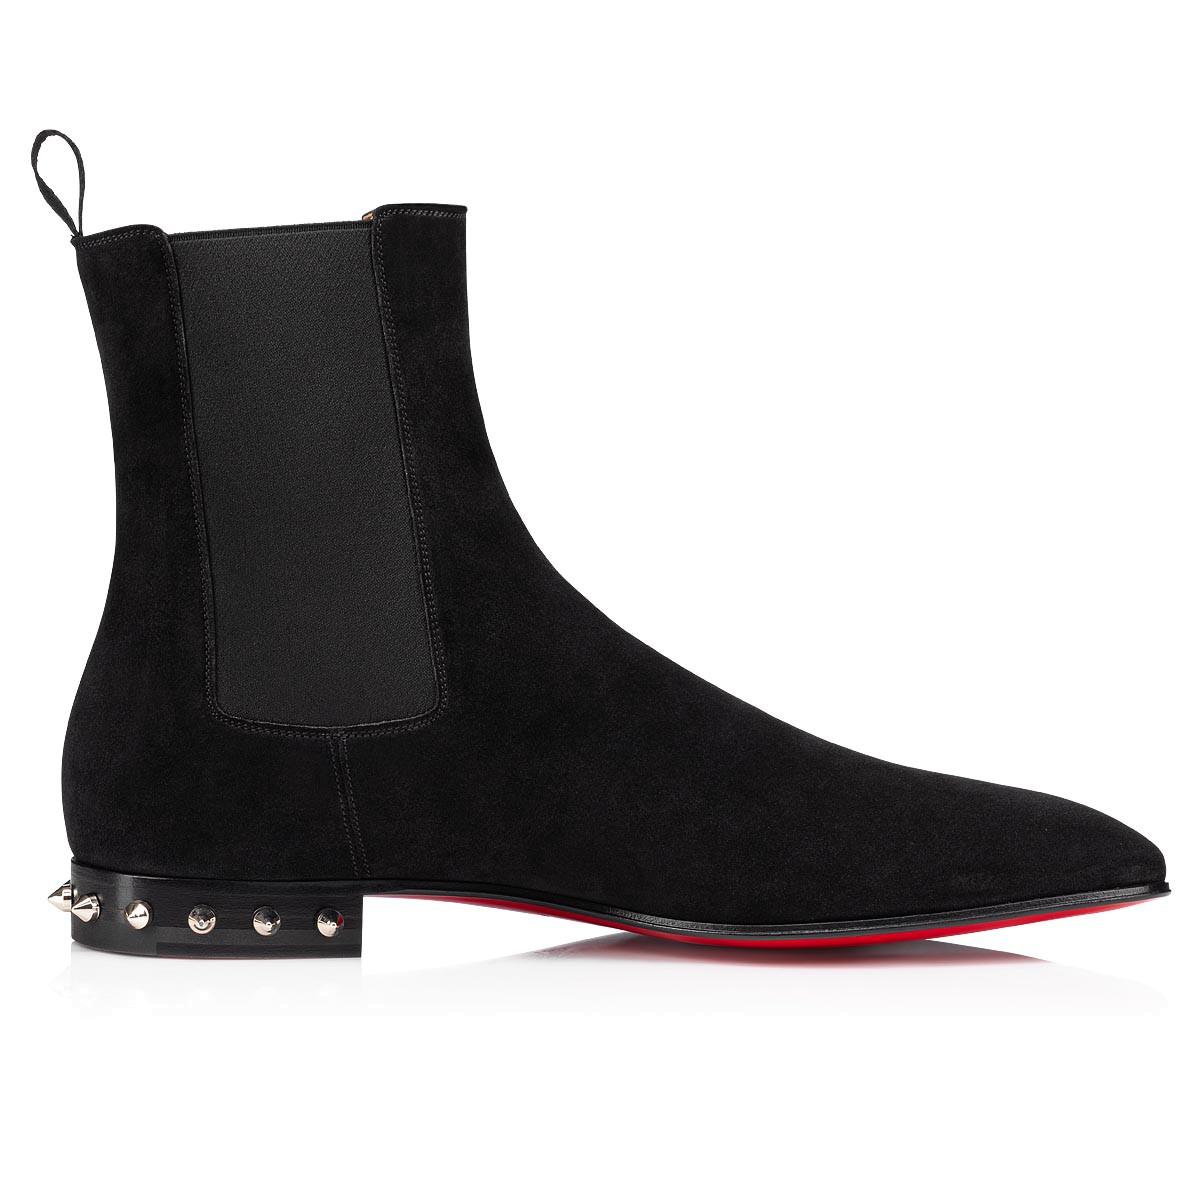 Shoes - So Roadie - Christian Louboutin